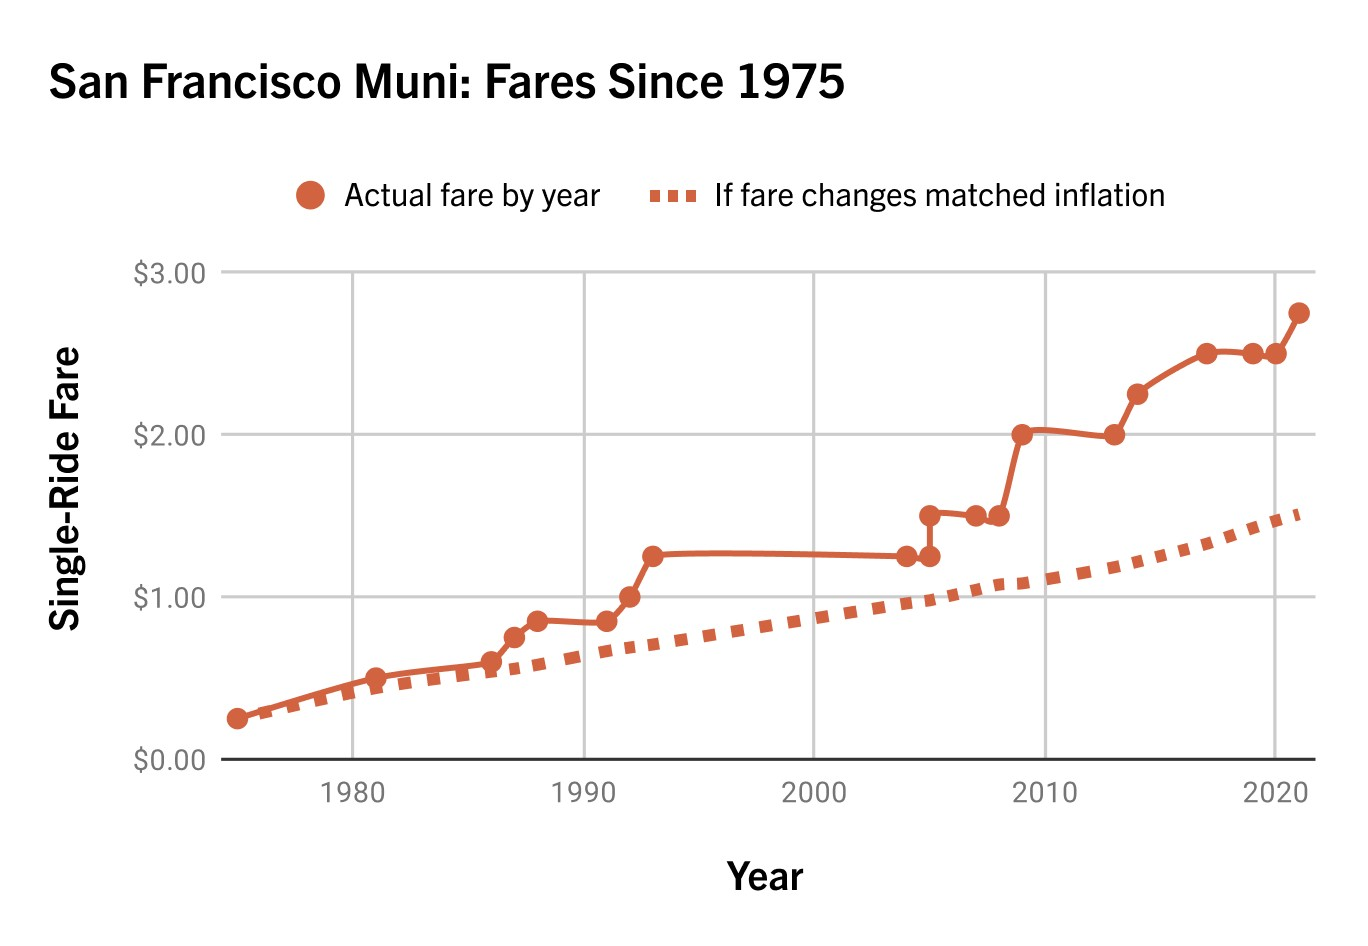 Muni fares have massively outpaced inflation since 1975.